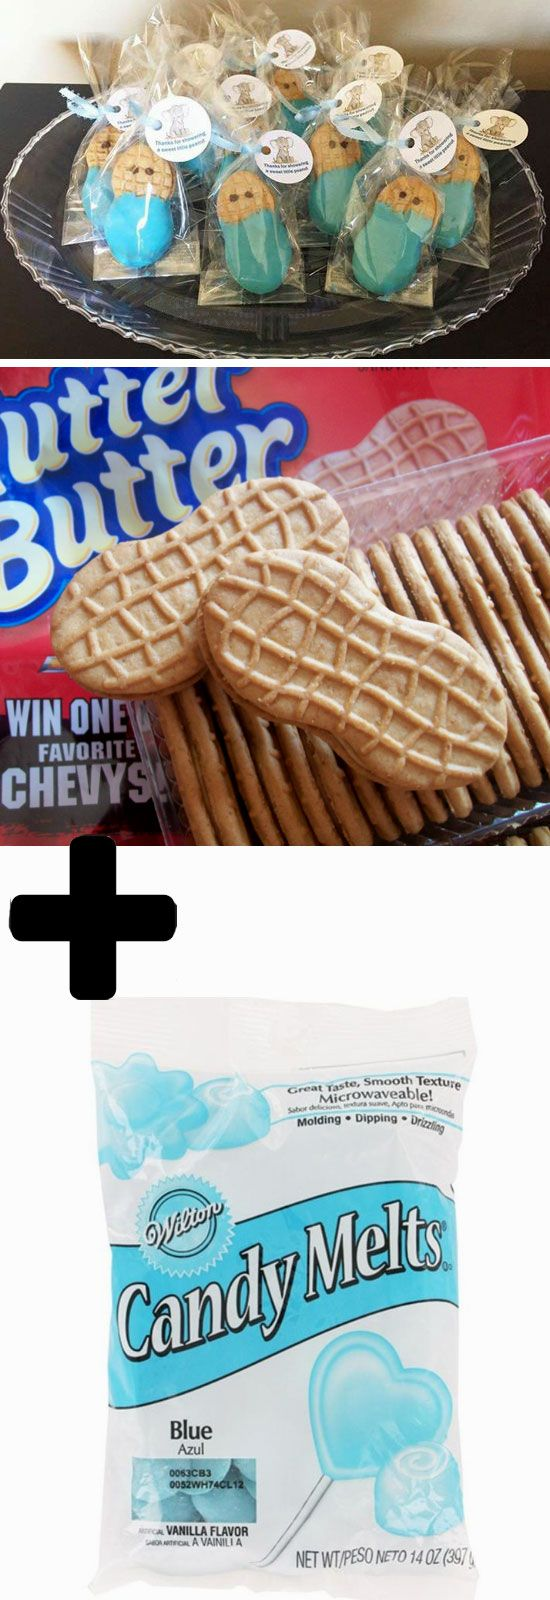 30 diy baby shower ideas for boys nutter butter baby shower 30 diy baby shower ideas for boys solutioingenieria Choice Image